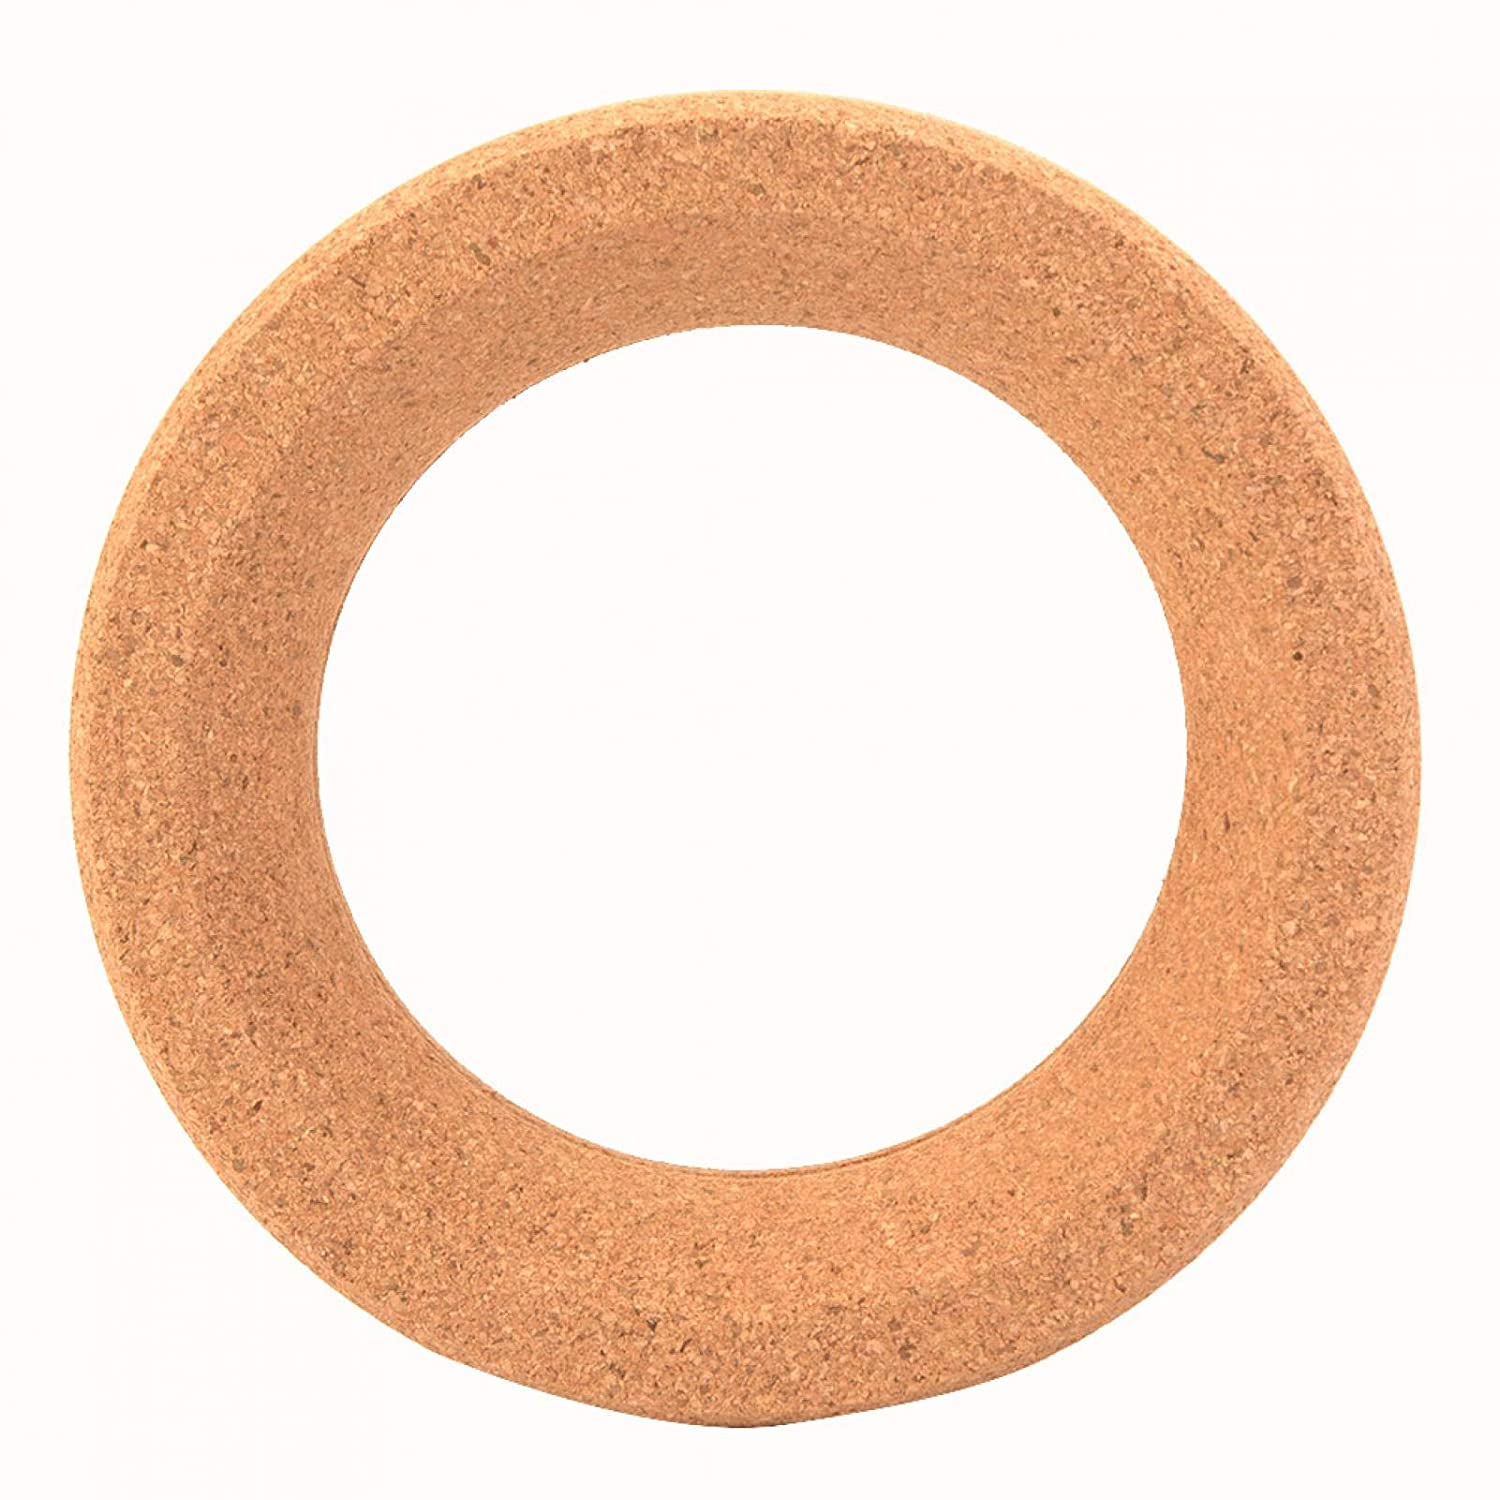 Lab Cork Holder Ring Good Excellence Friction Coefficien Elasticity Strong Max 83% OFF